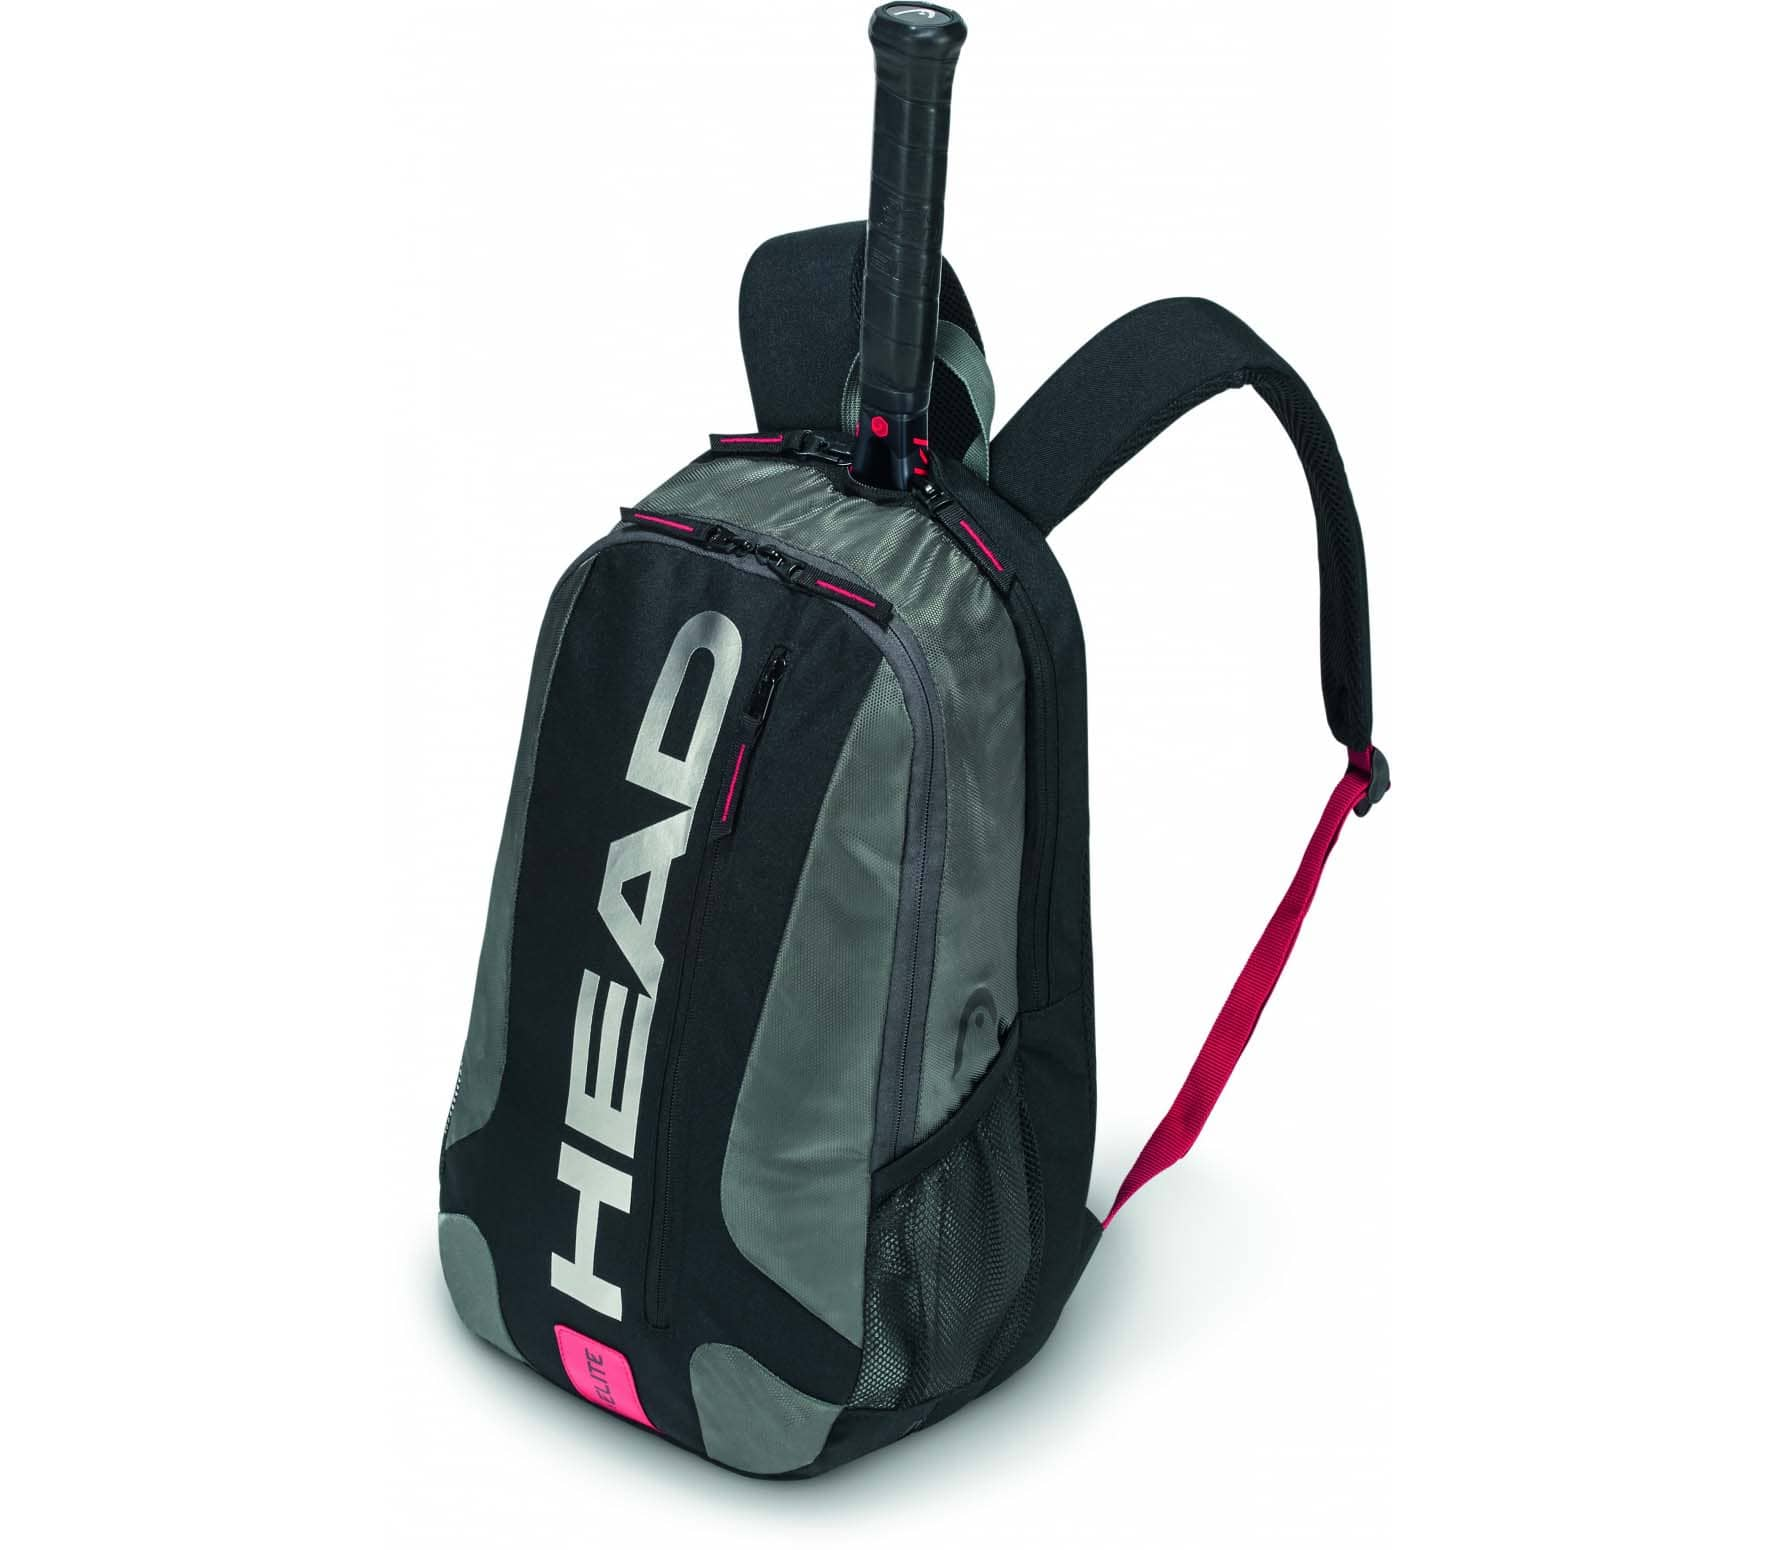 Head - Elite backpack tennis bag (grey)